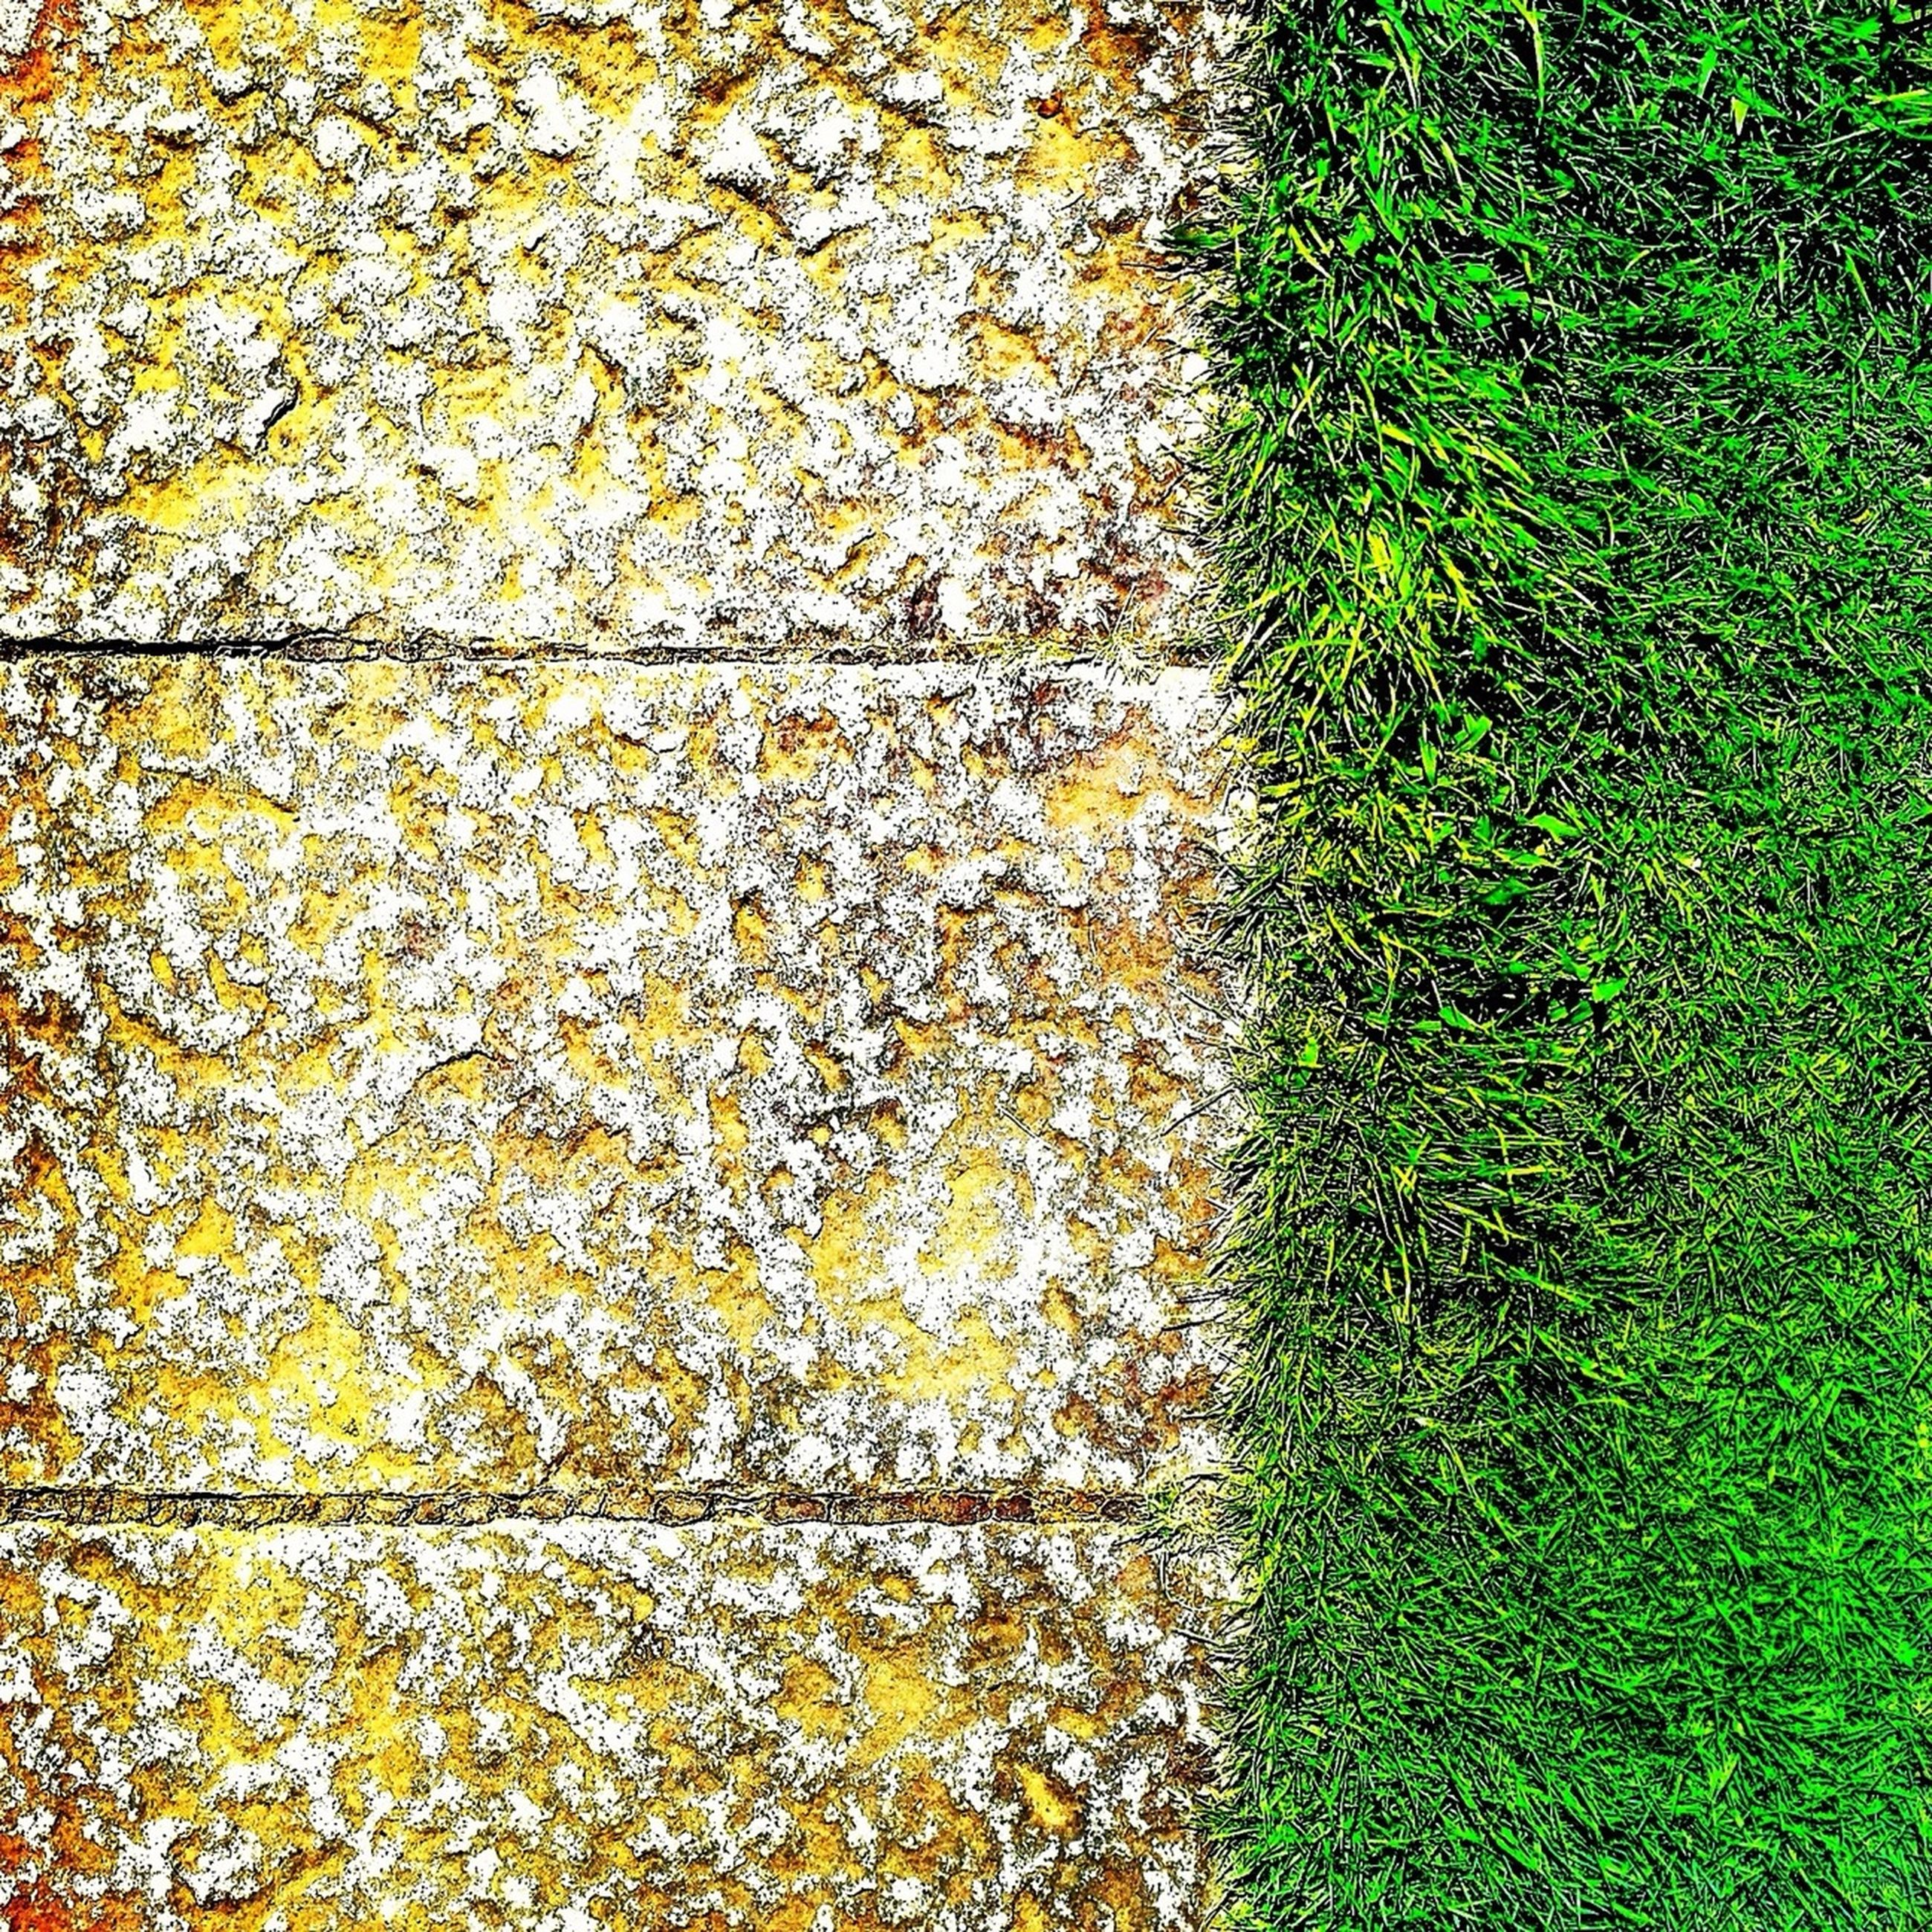 growth, full frame, green color, yellow, high angle view, plant, backgrounds, leaf, textured, nature, day, outdoors, grass, no people, ivy, sunlight, moss, beauty in nature, field, season